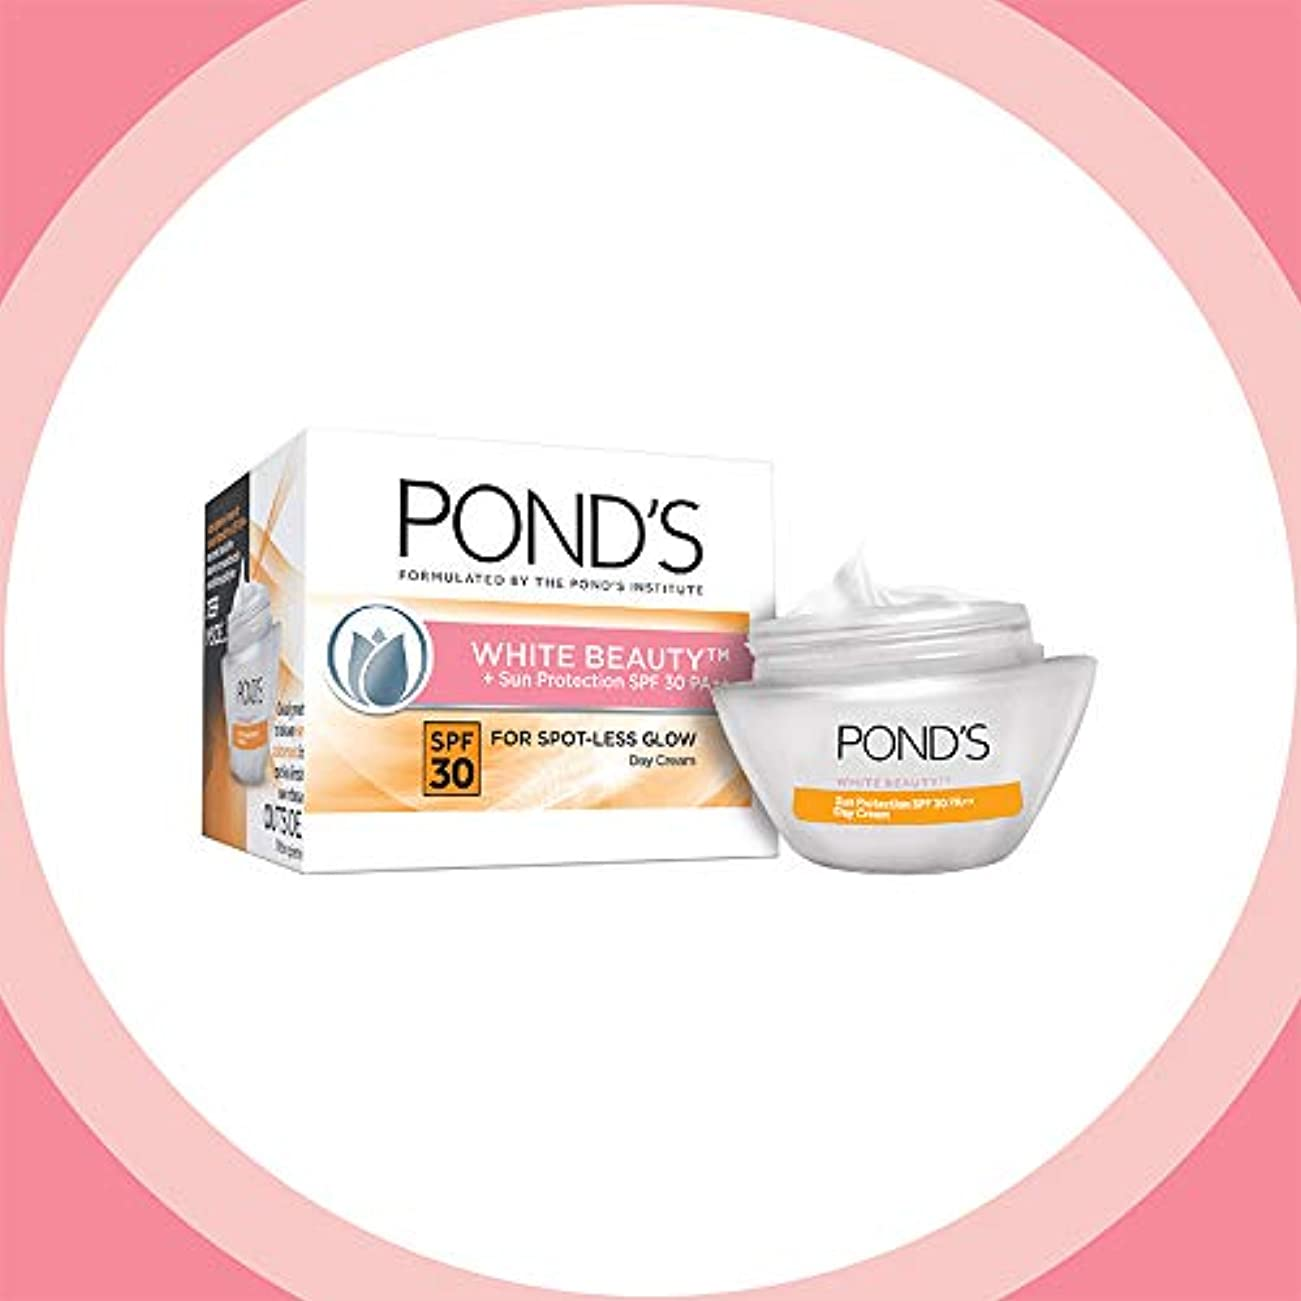 ダイバー魅力検索POND'S White Beauty Sun Protection SPF 30 Day Cream, 35 gms (並行インポート) India